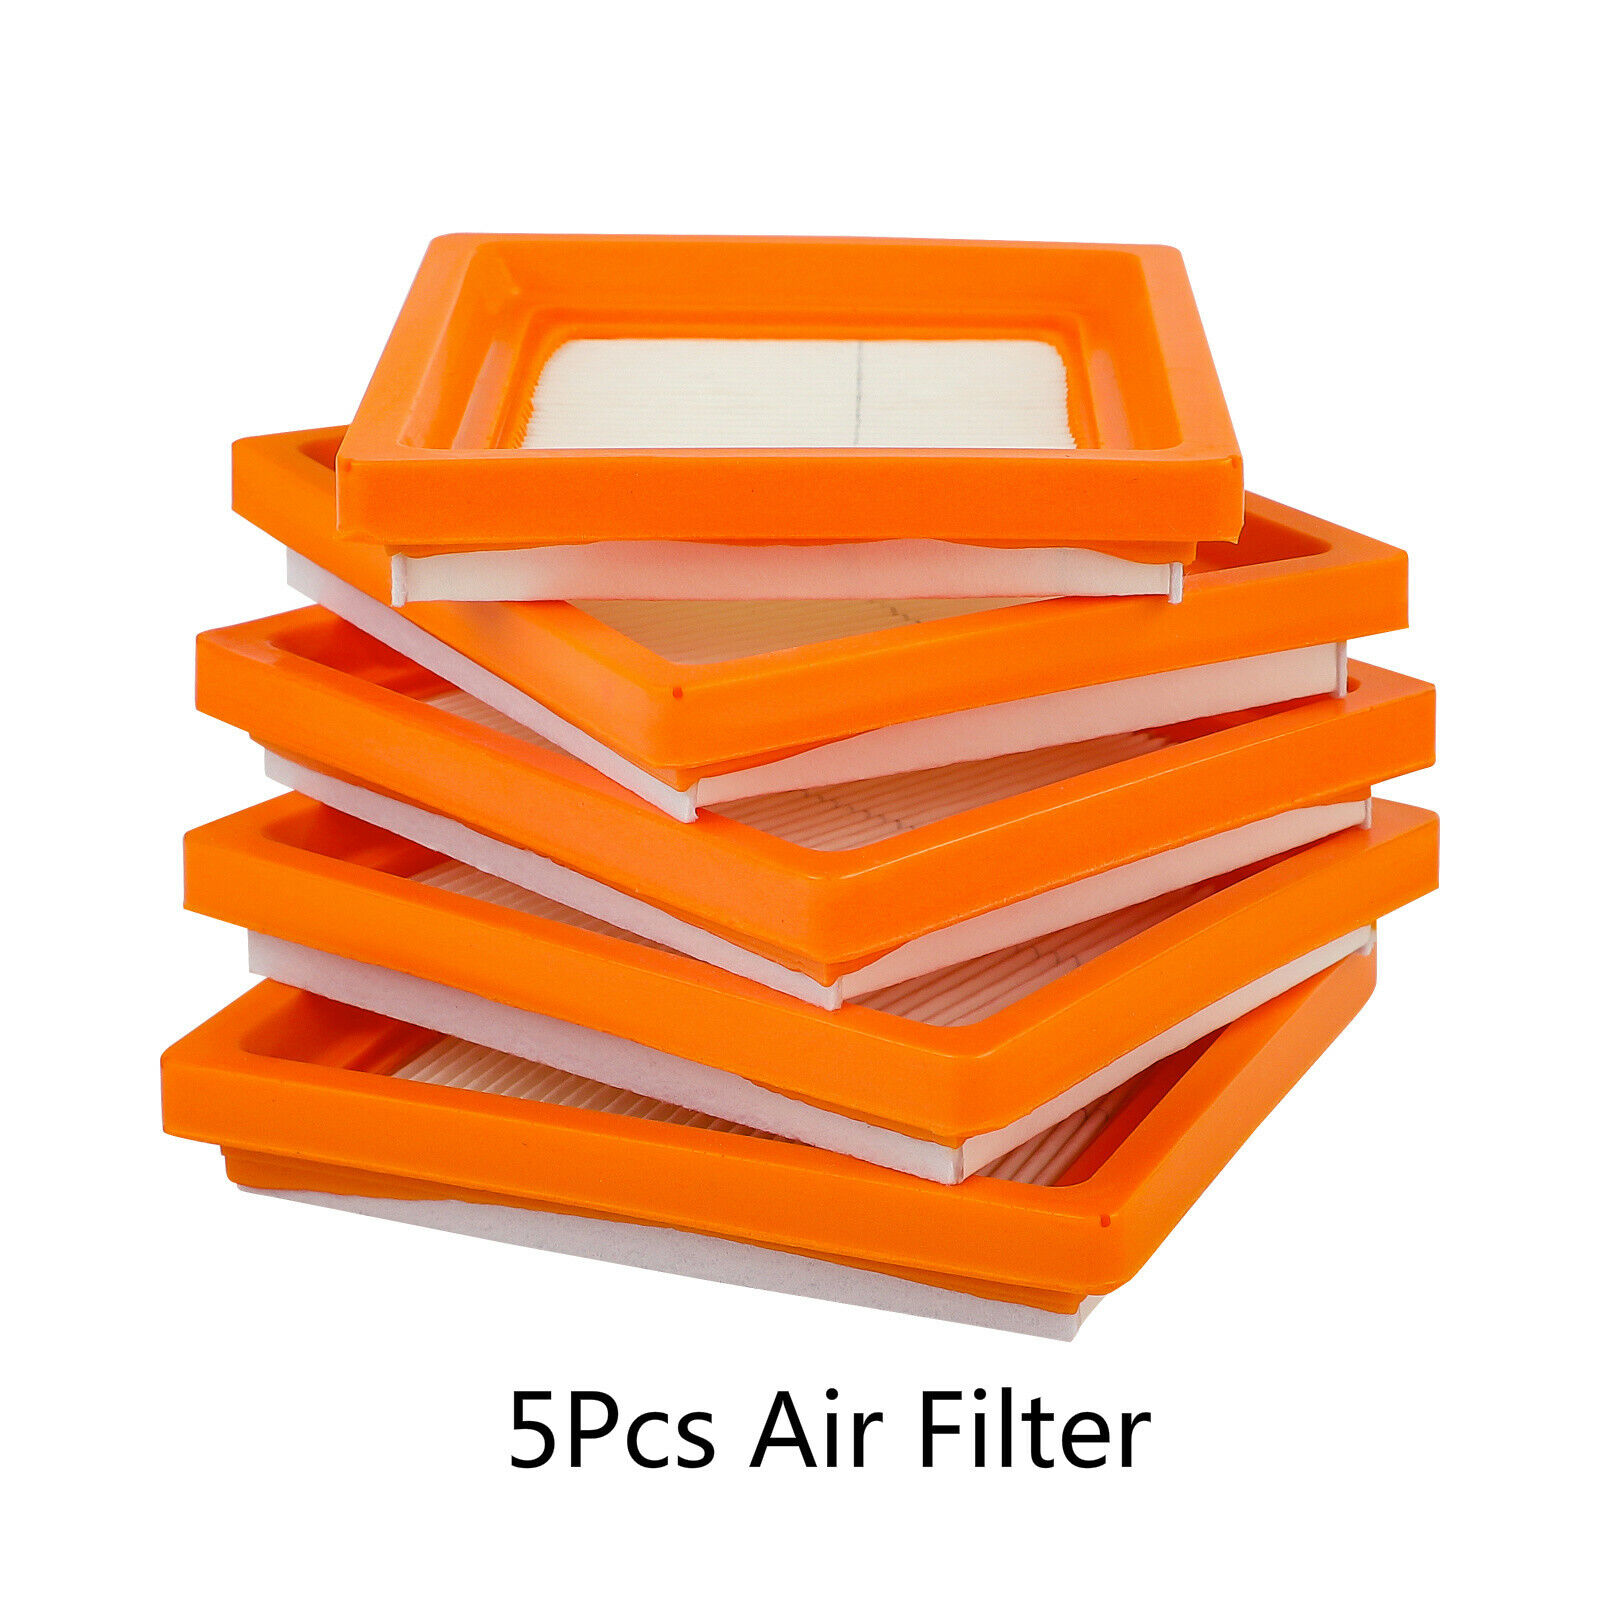 5x Air Filter for Kohler 14 083 15-S 4 083 16-S XT675 XT650 Lawn Mower Home & Garden